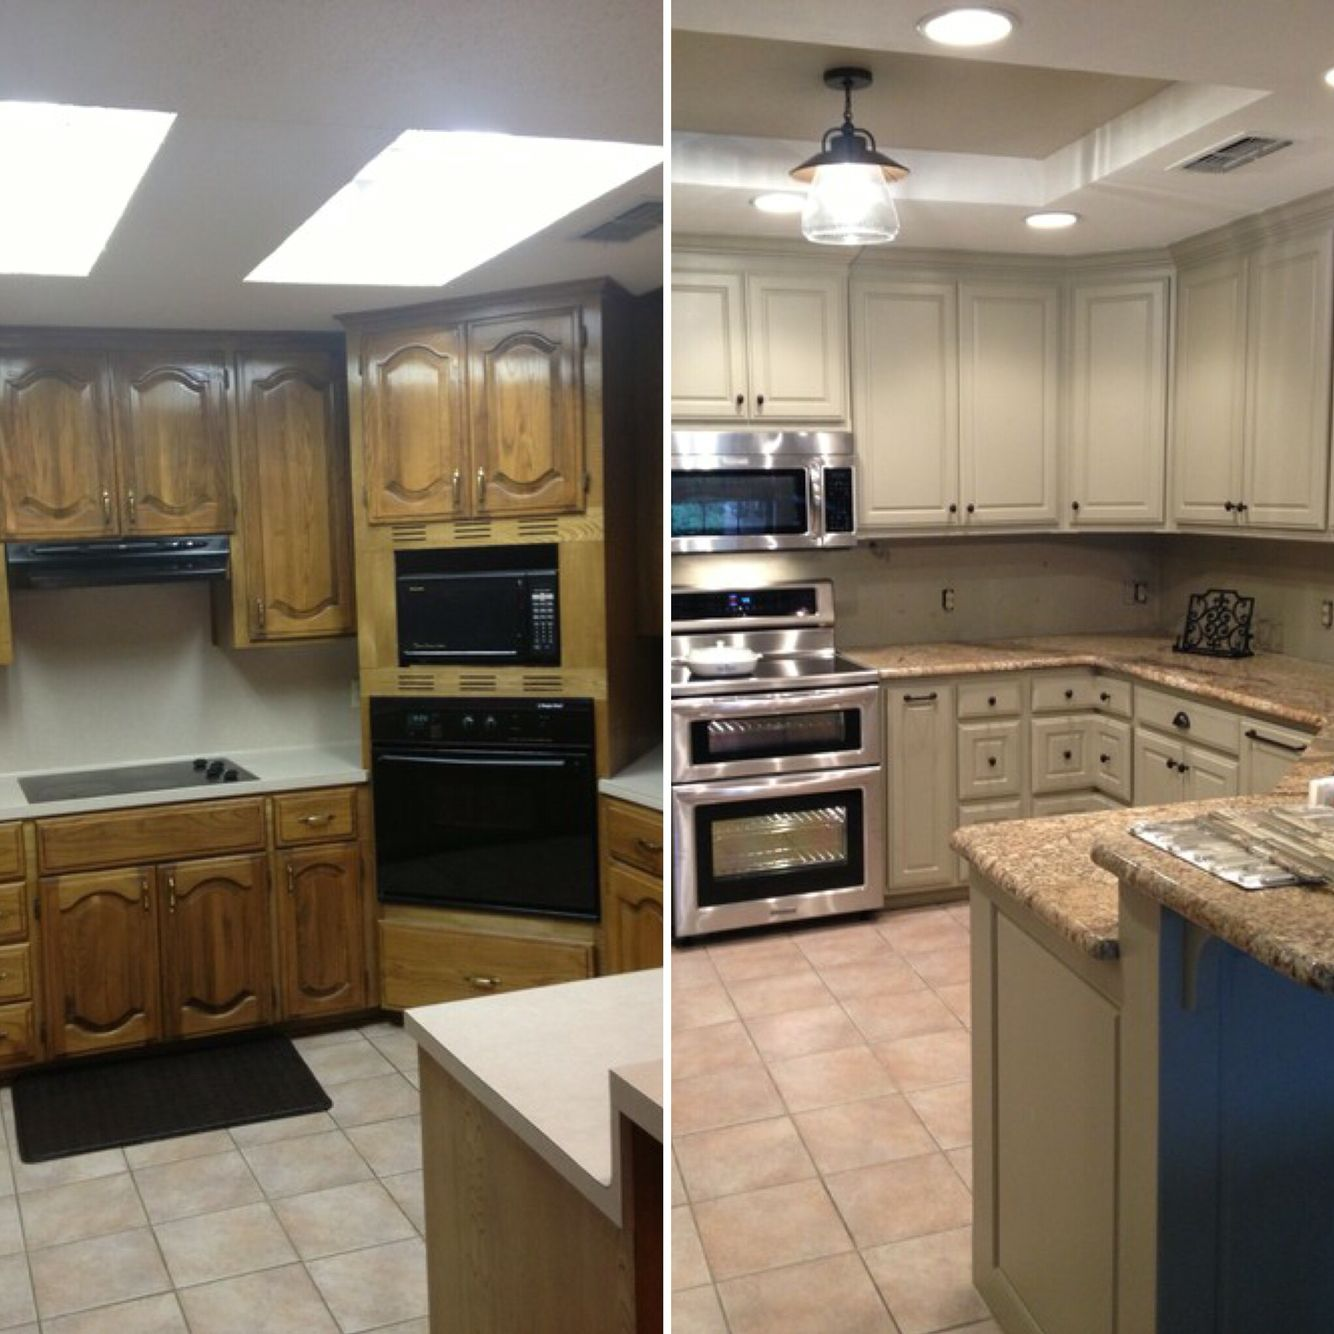 kitchen ceiling tiles corner sinks before and after for updating drop